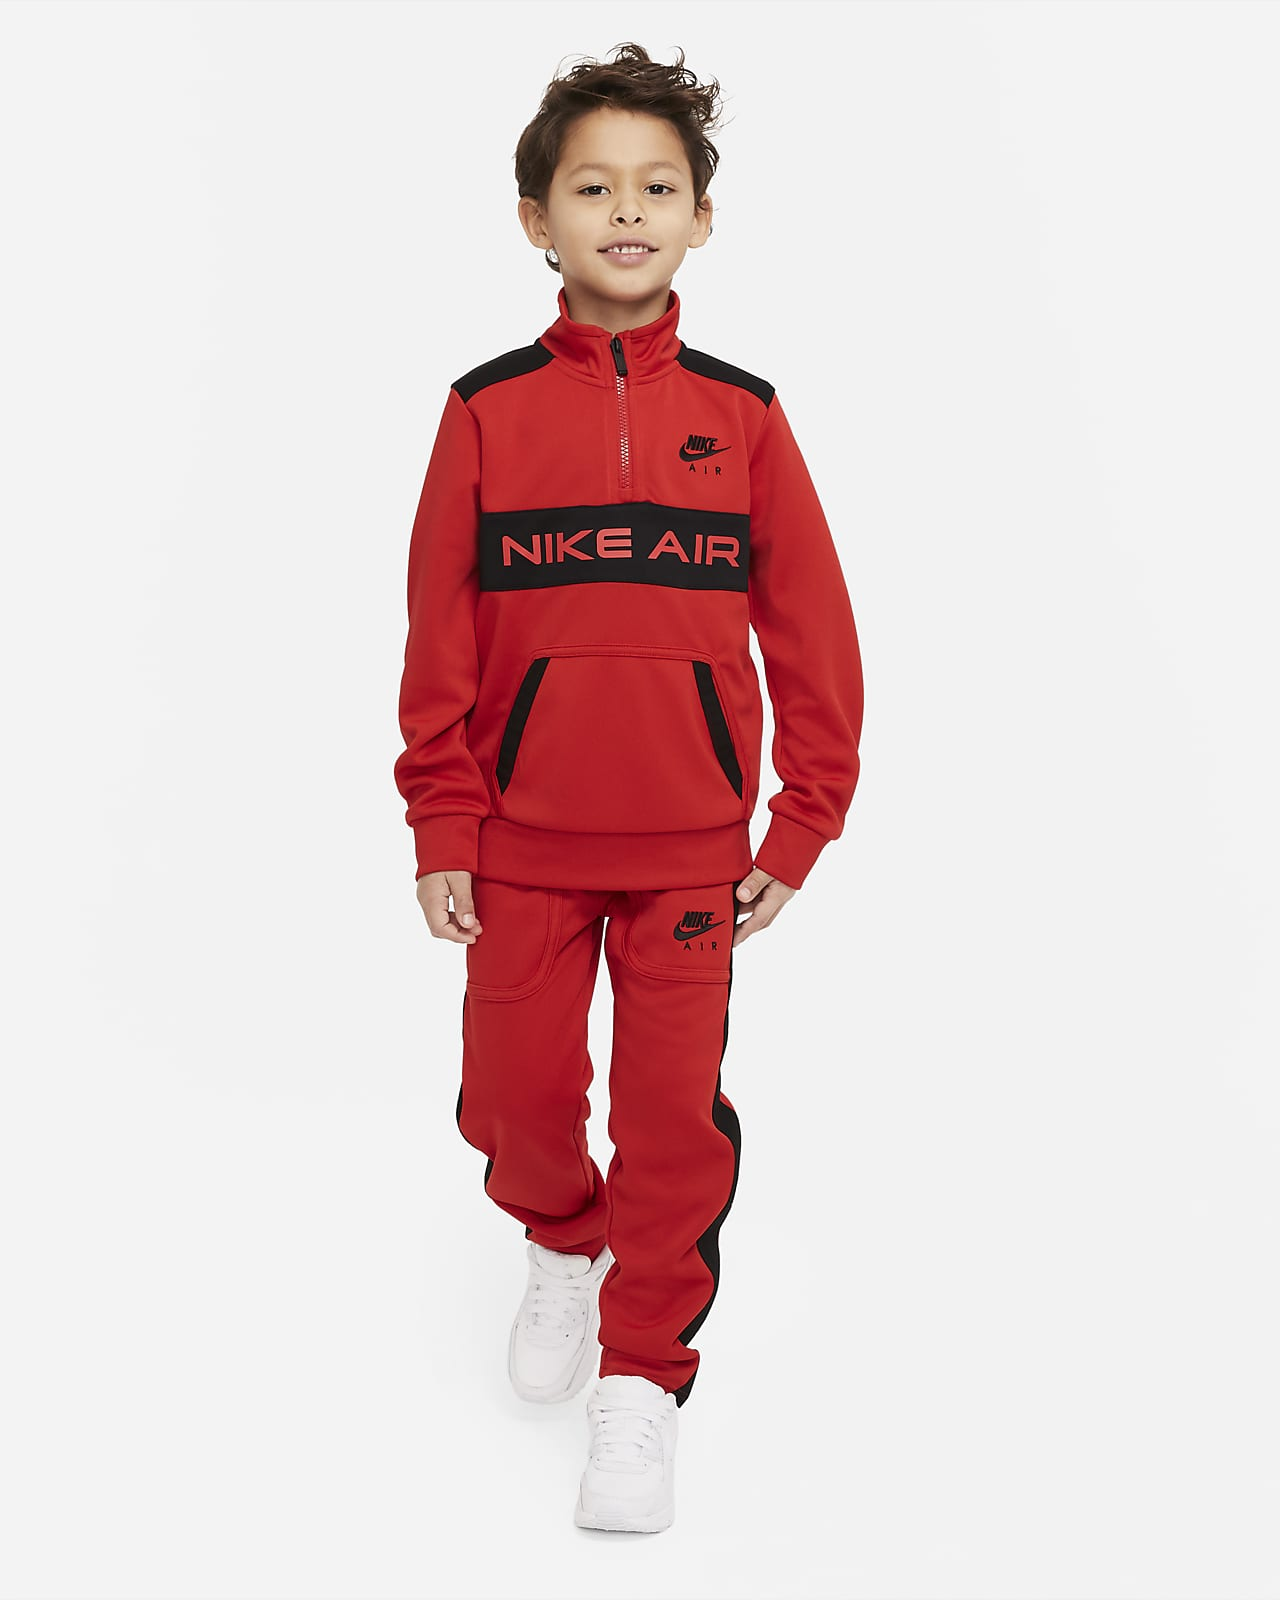 Nike Air Little Kids' Top and Joggers Set